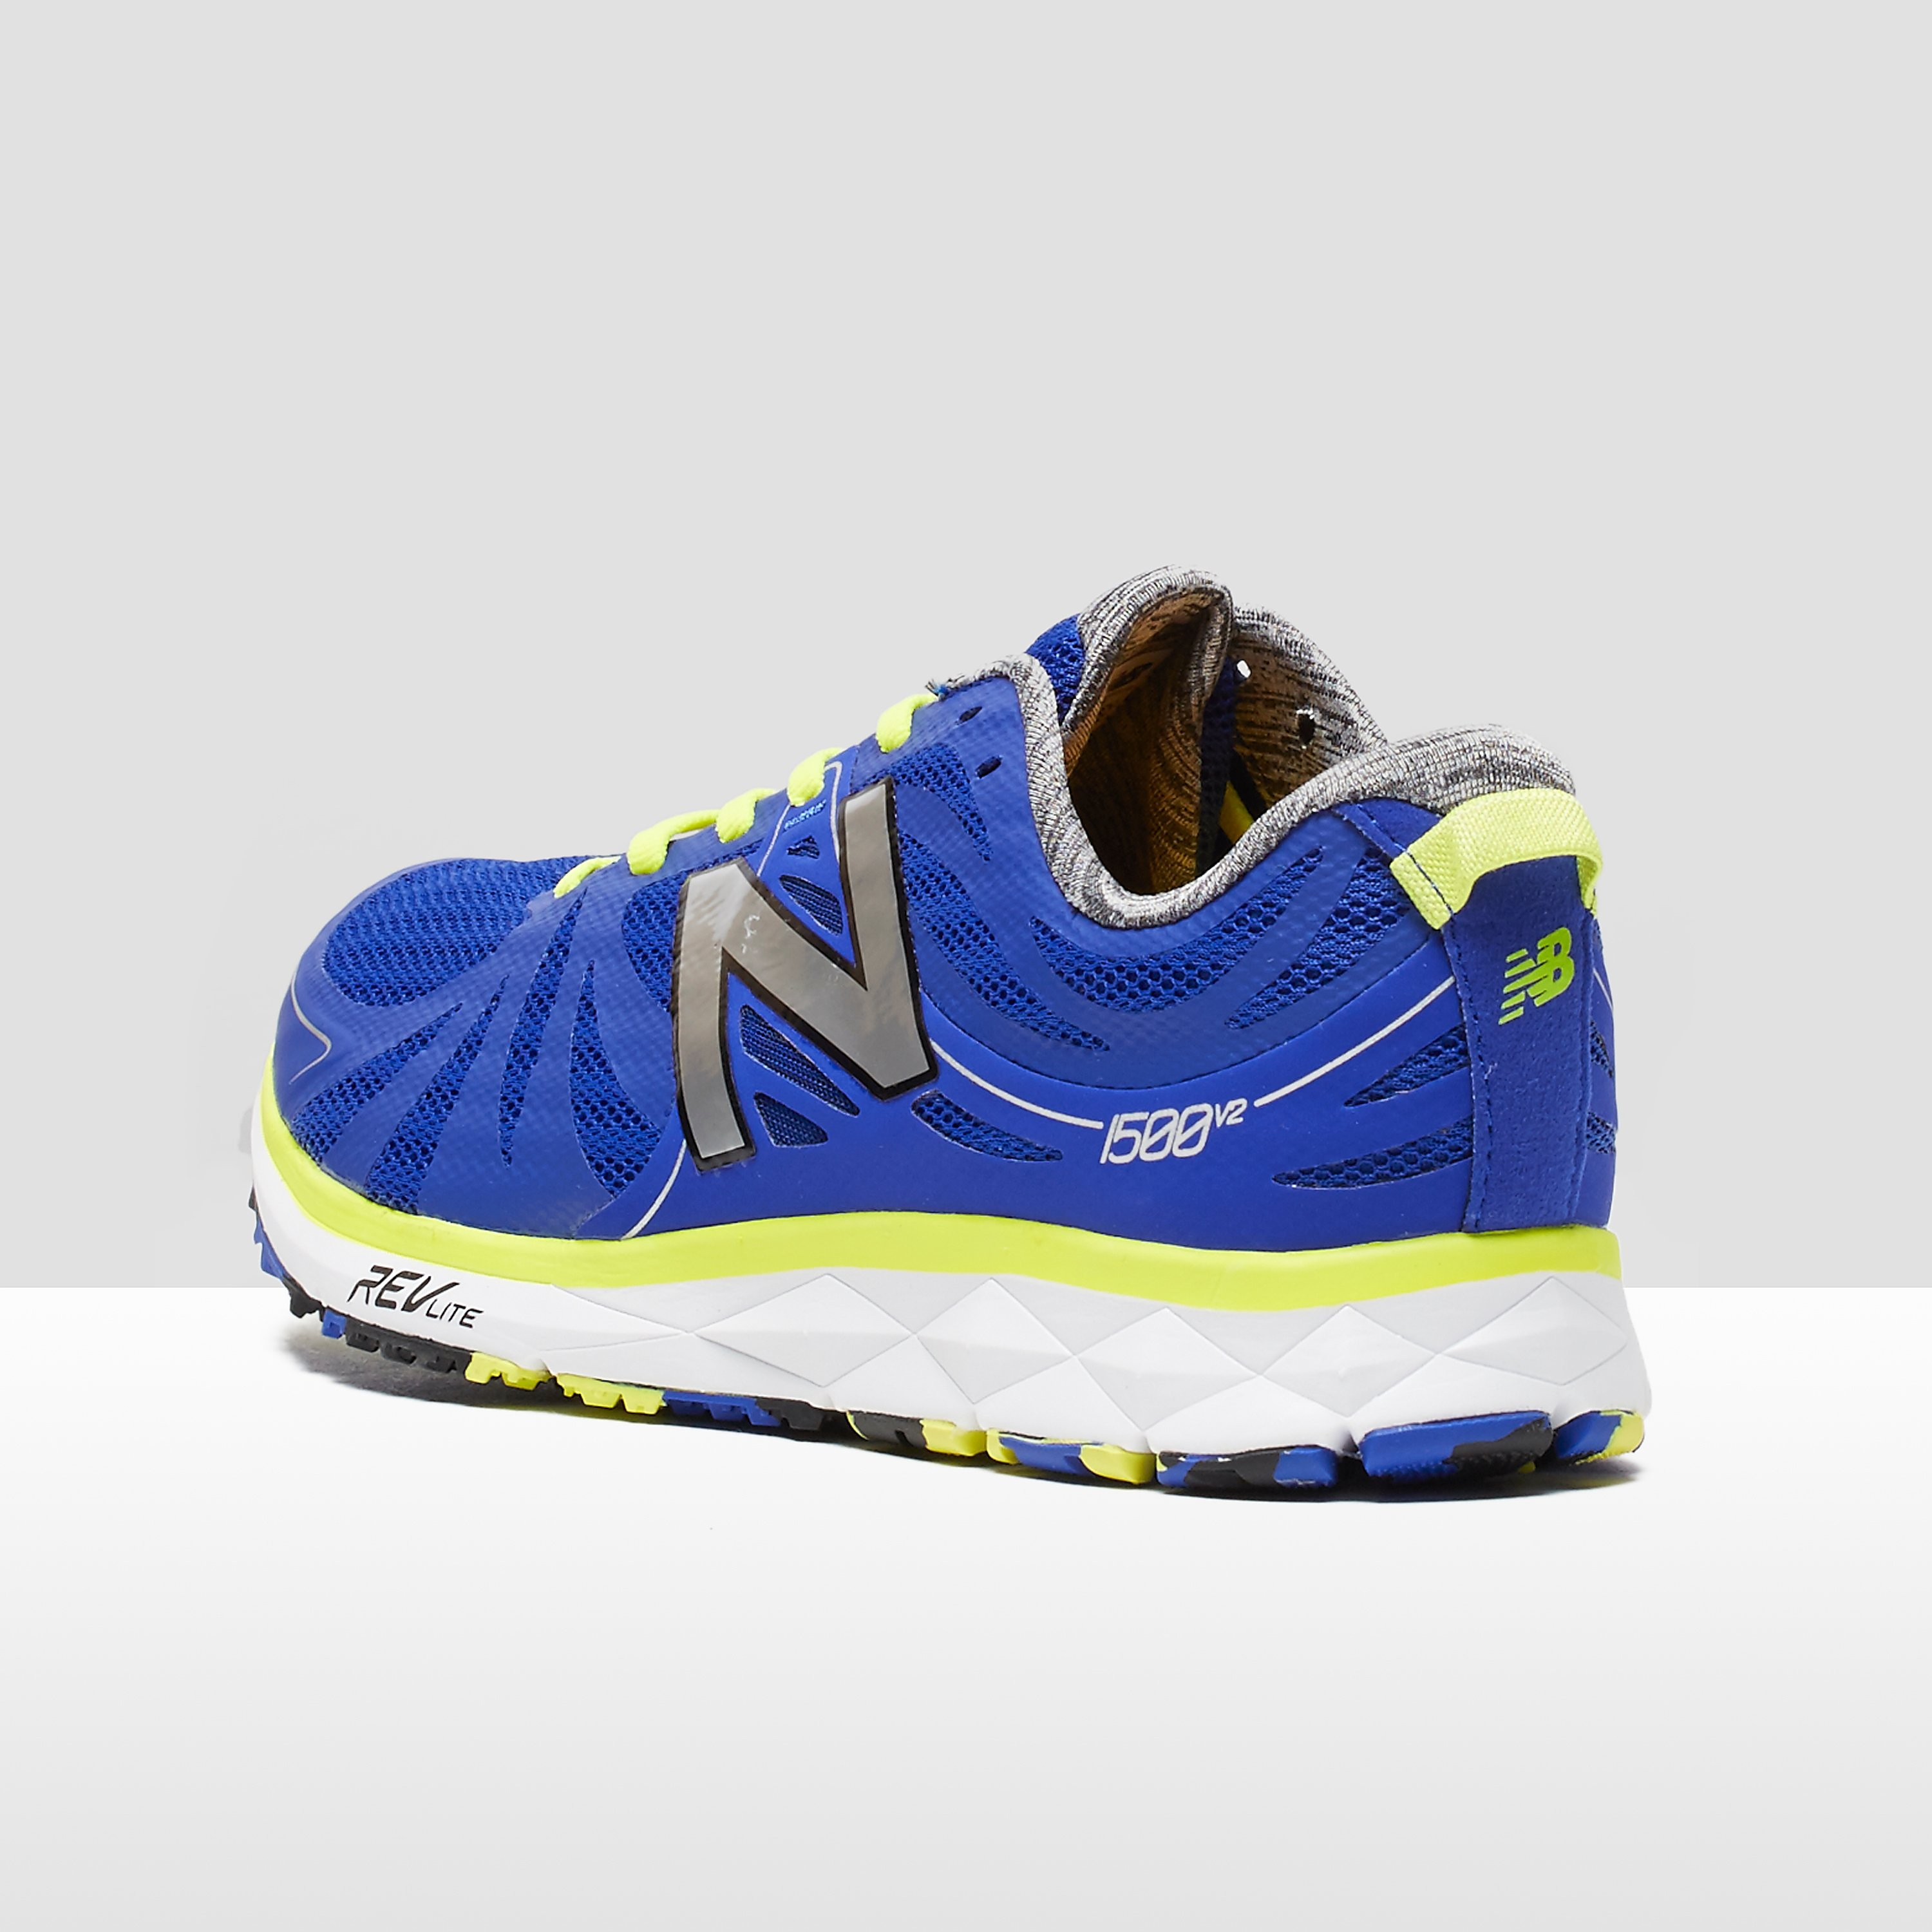 New Balance W1500v2 men's running shoe